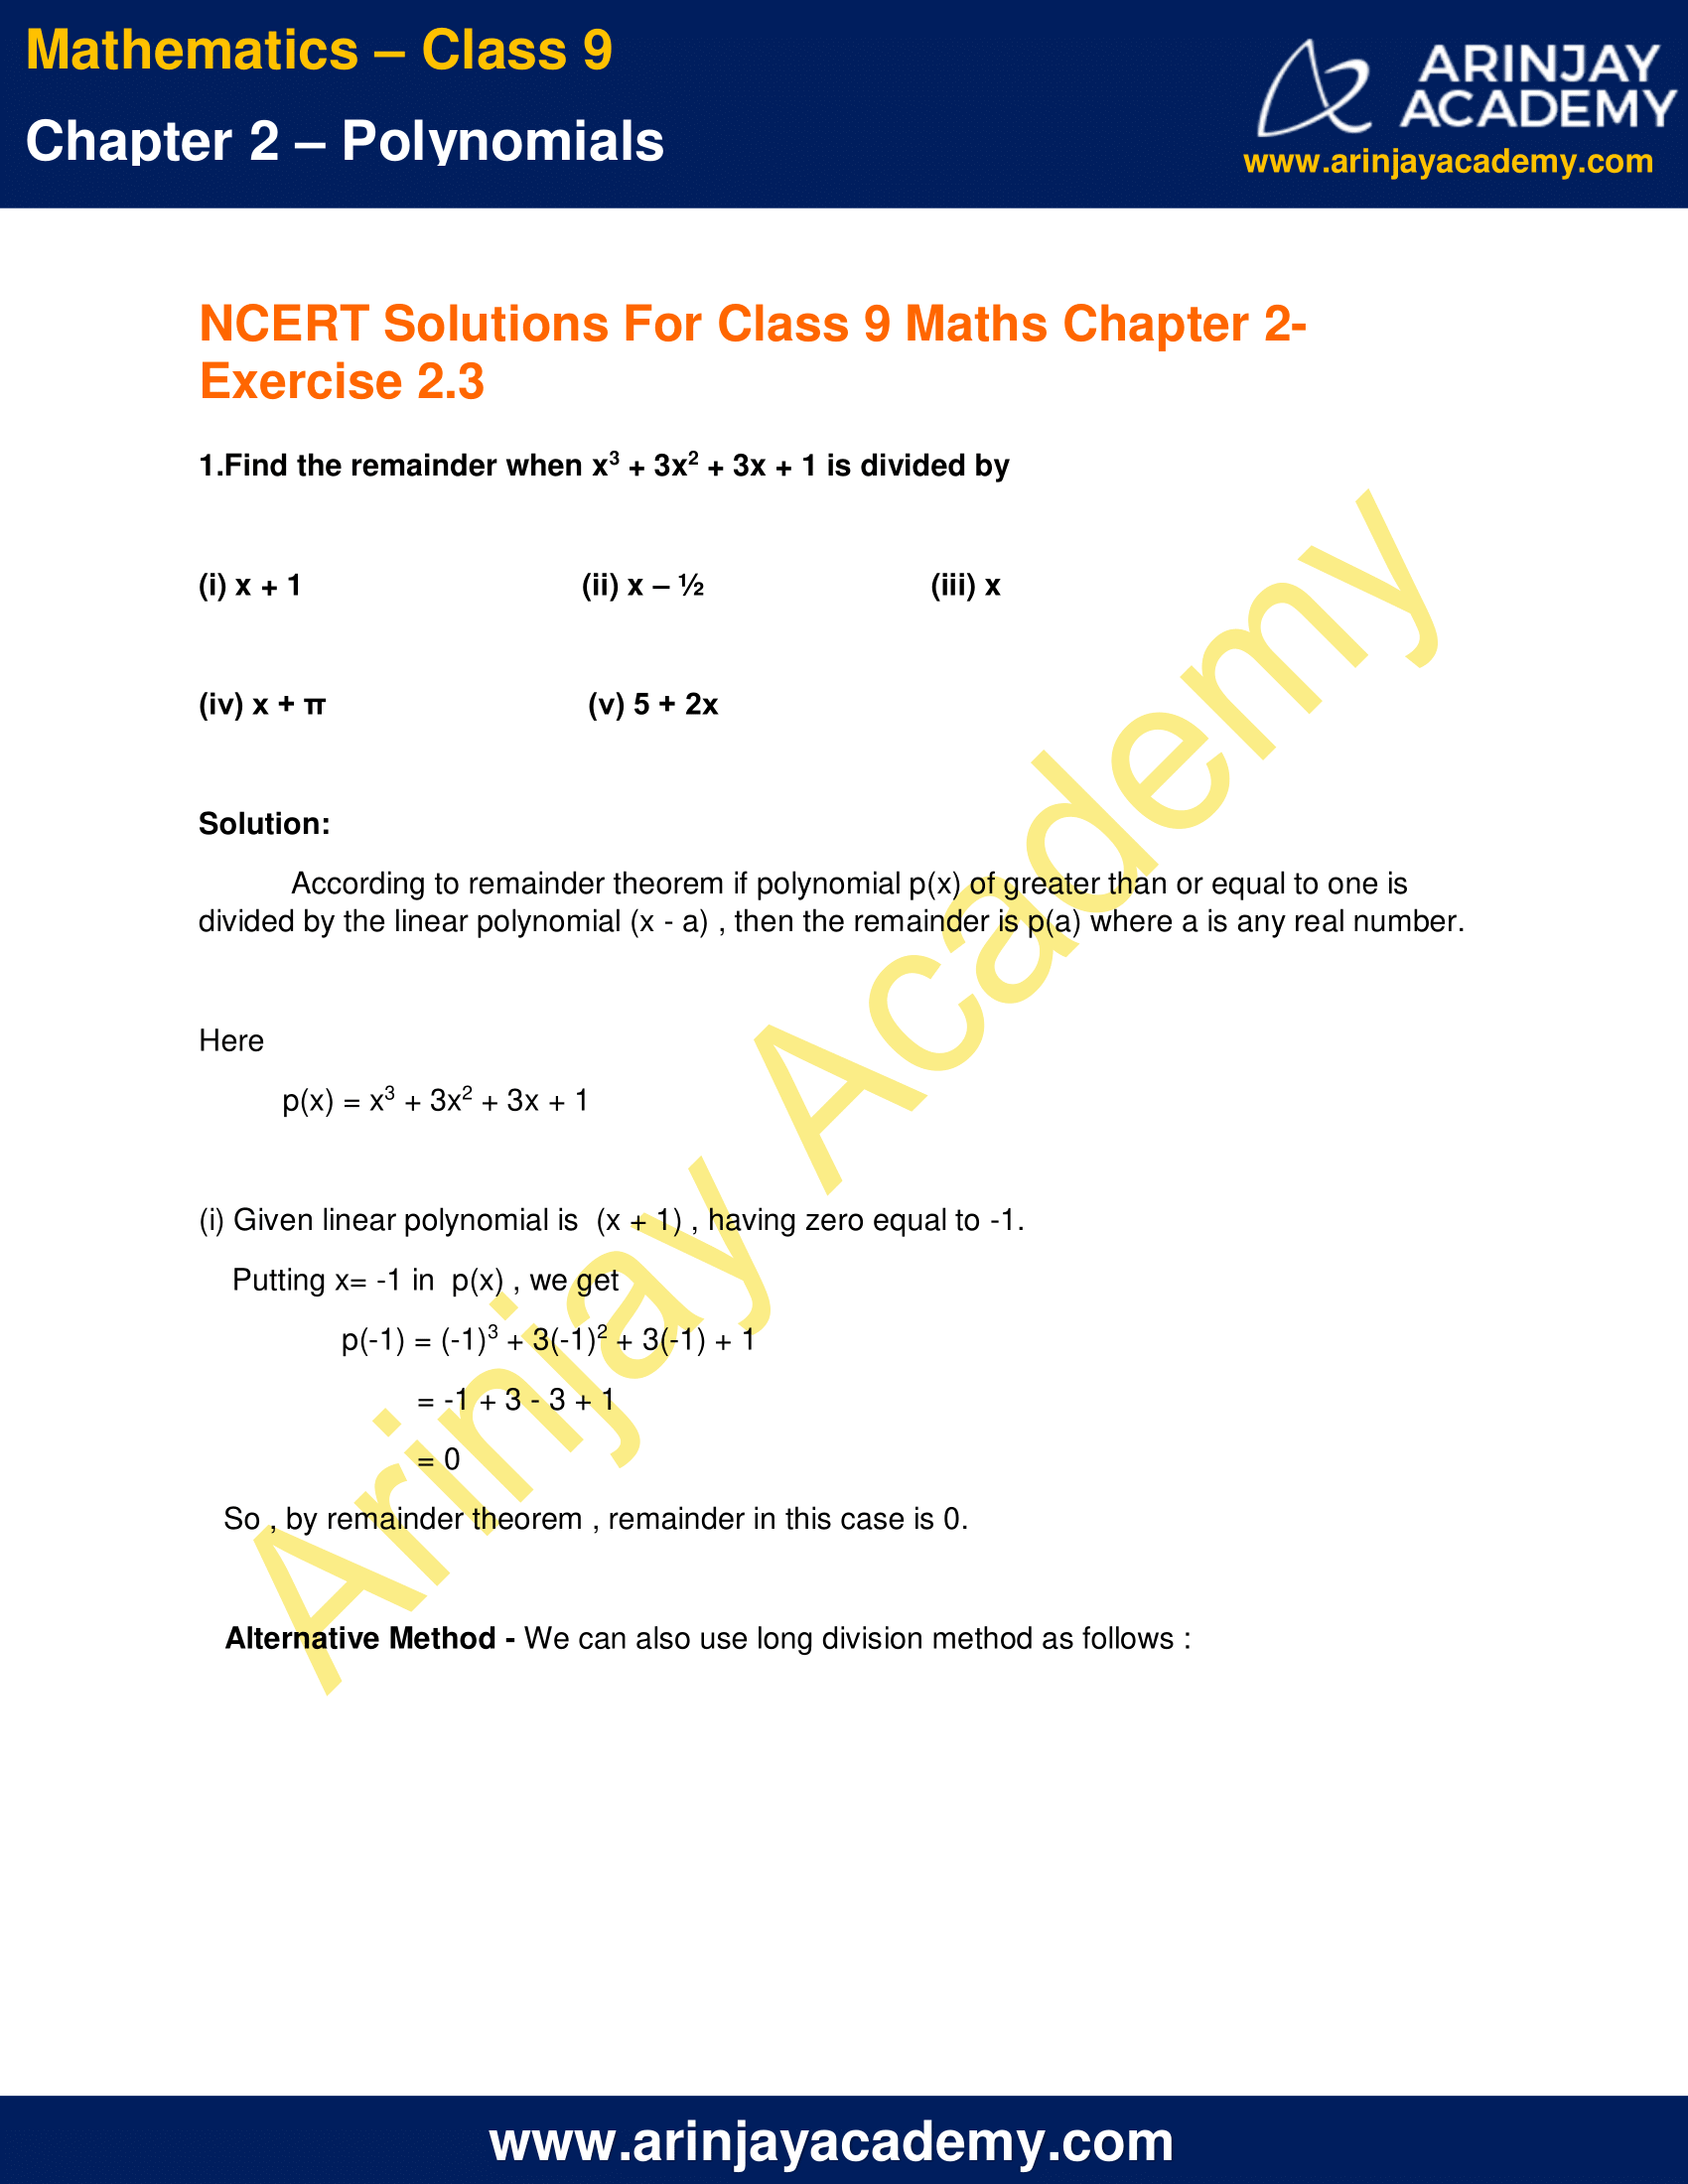 NCERT Solutions for Class 9 Maths Chapter 2 Exercise 2.3 image 1